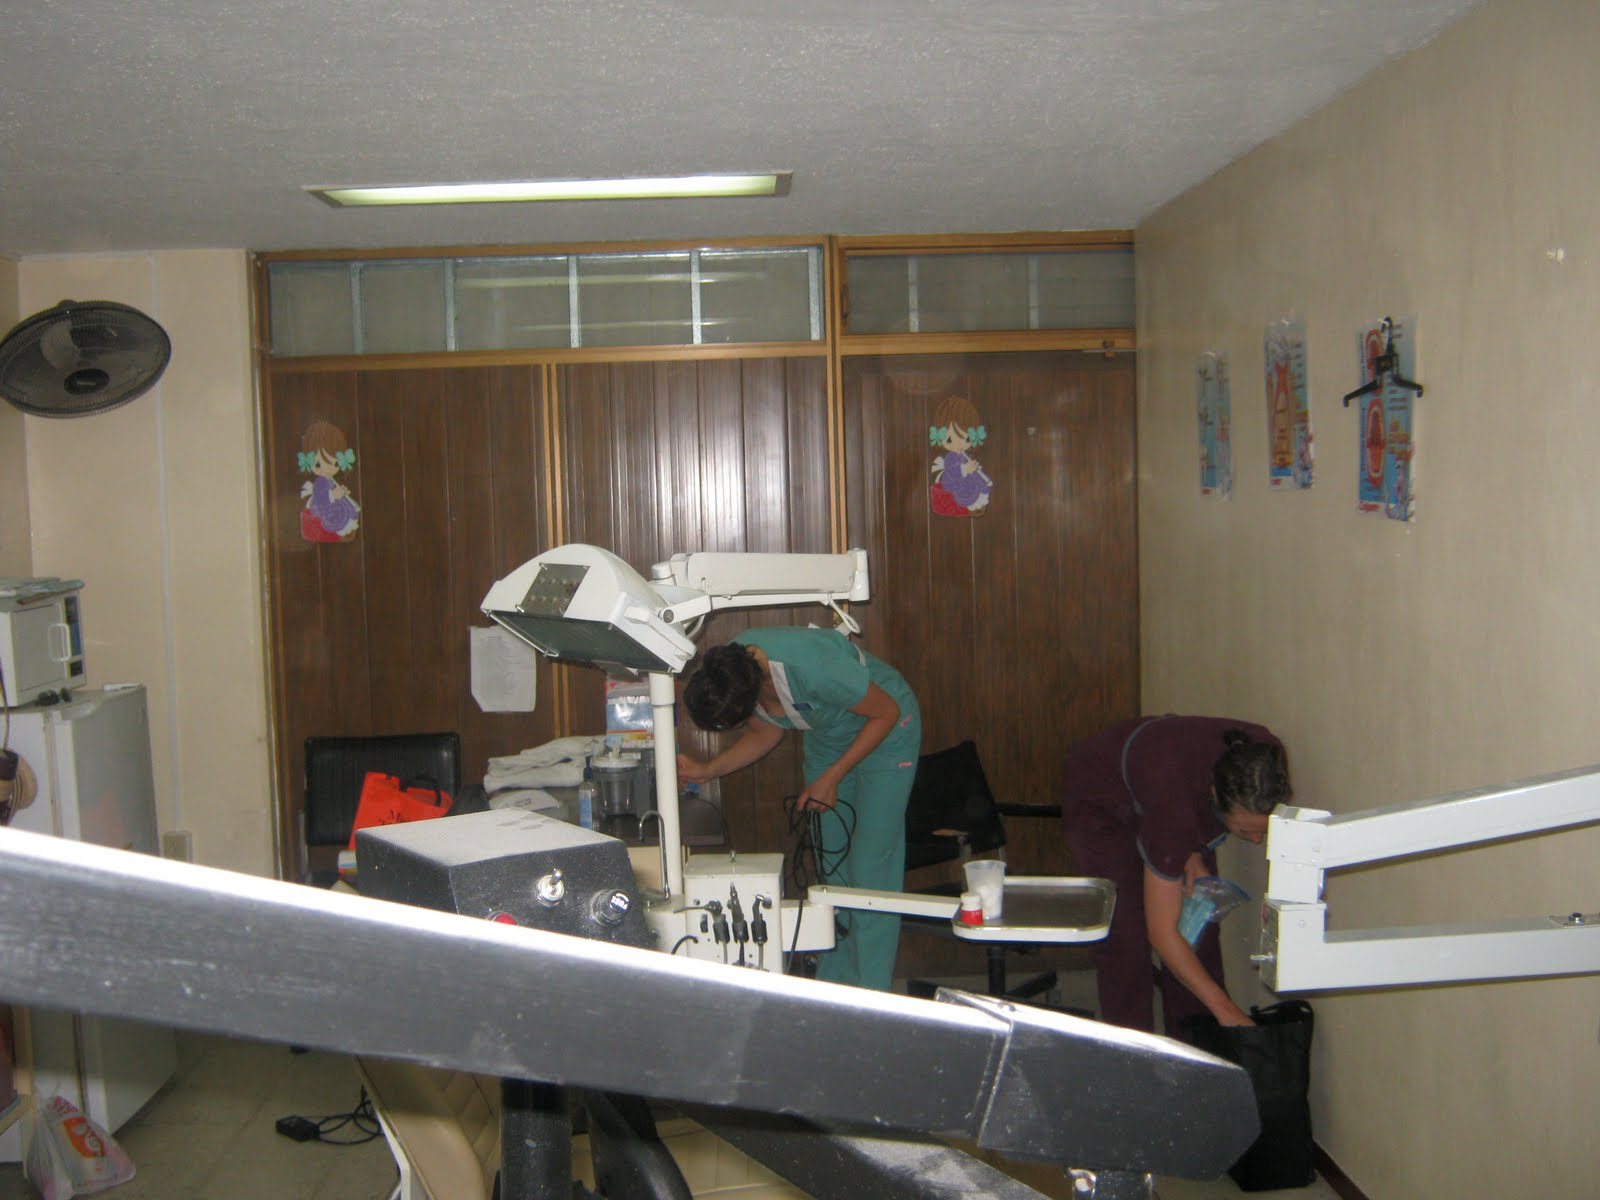 Very Cramped Quarters For Three Dental Hygienists We Had To Create A Makeshift Chair With Office Chairs The Third Person